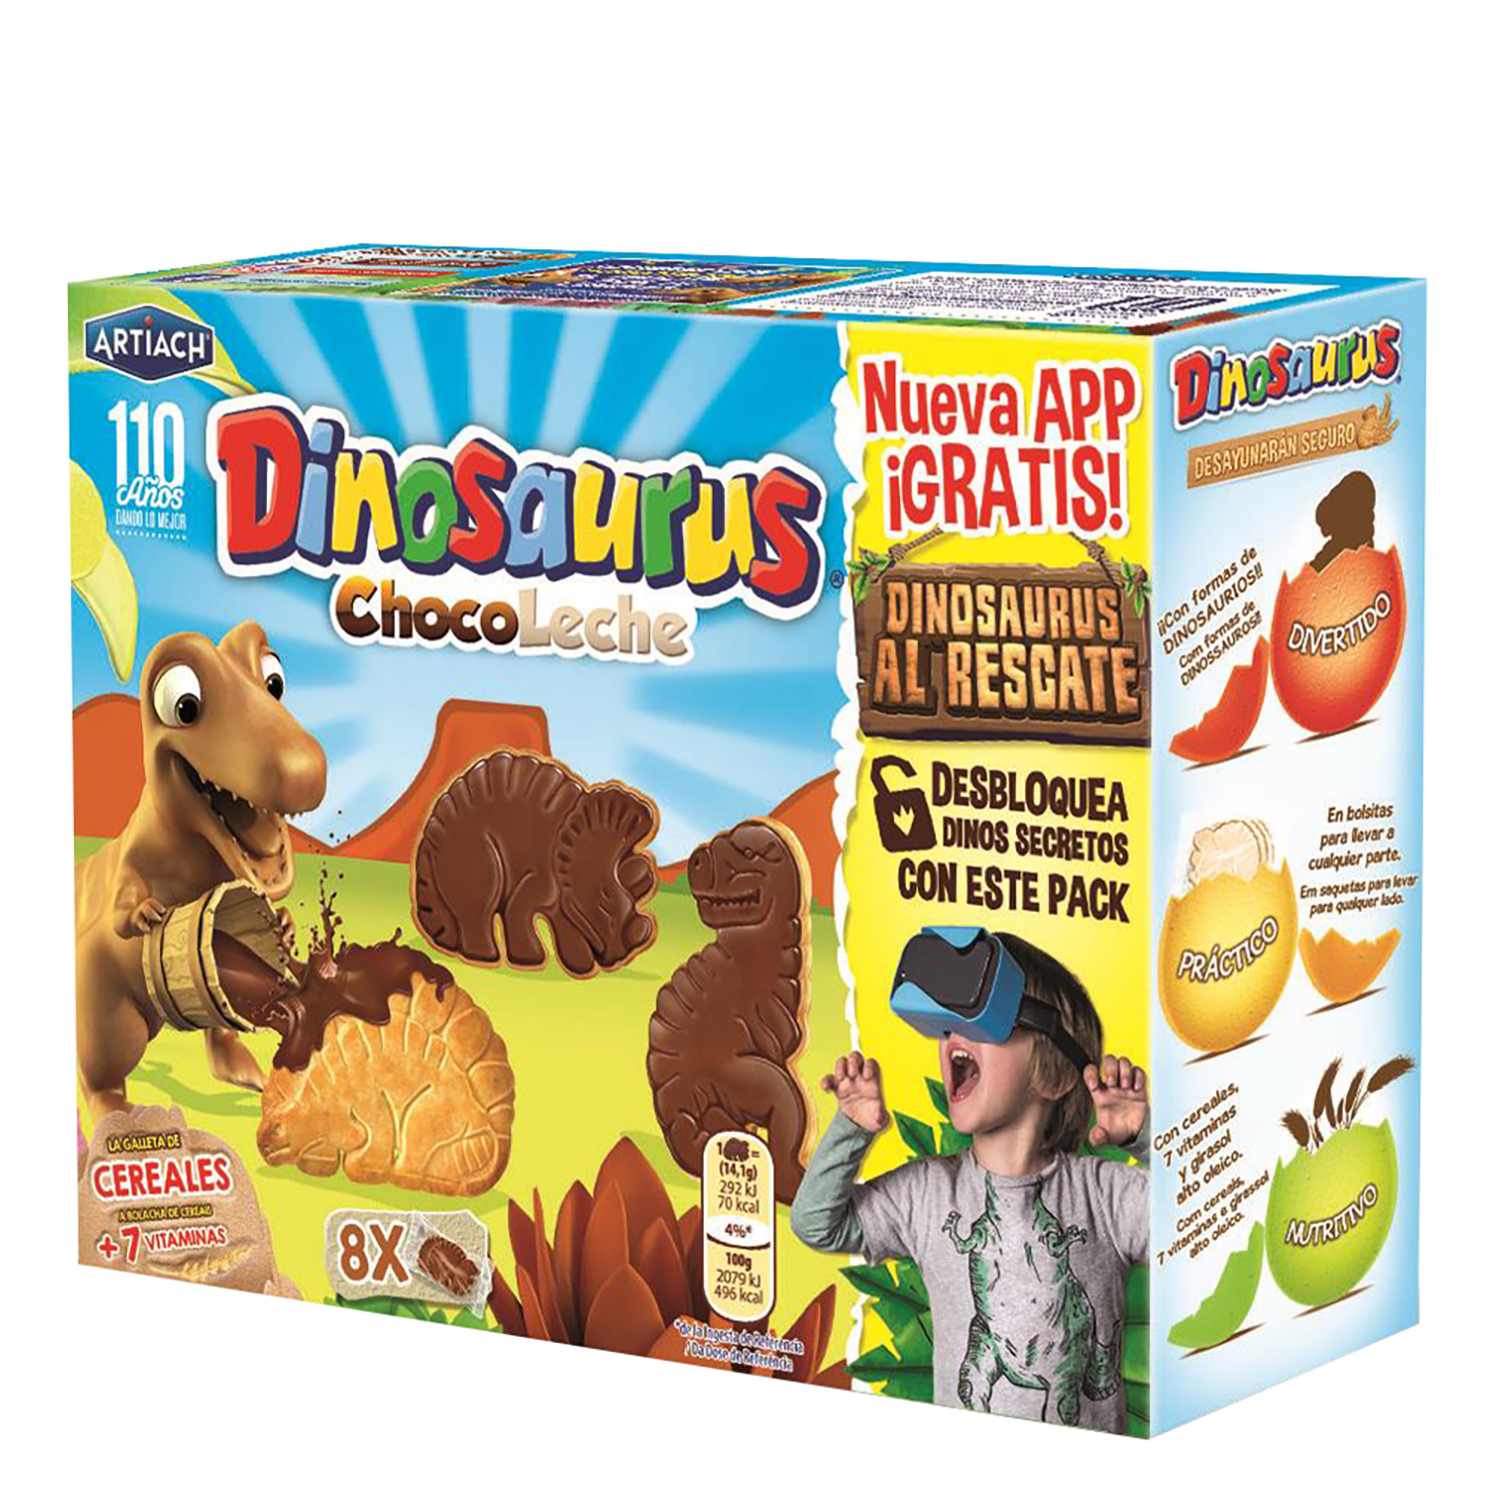 Galletas Dinosaurus chocolate y leche